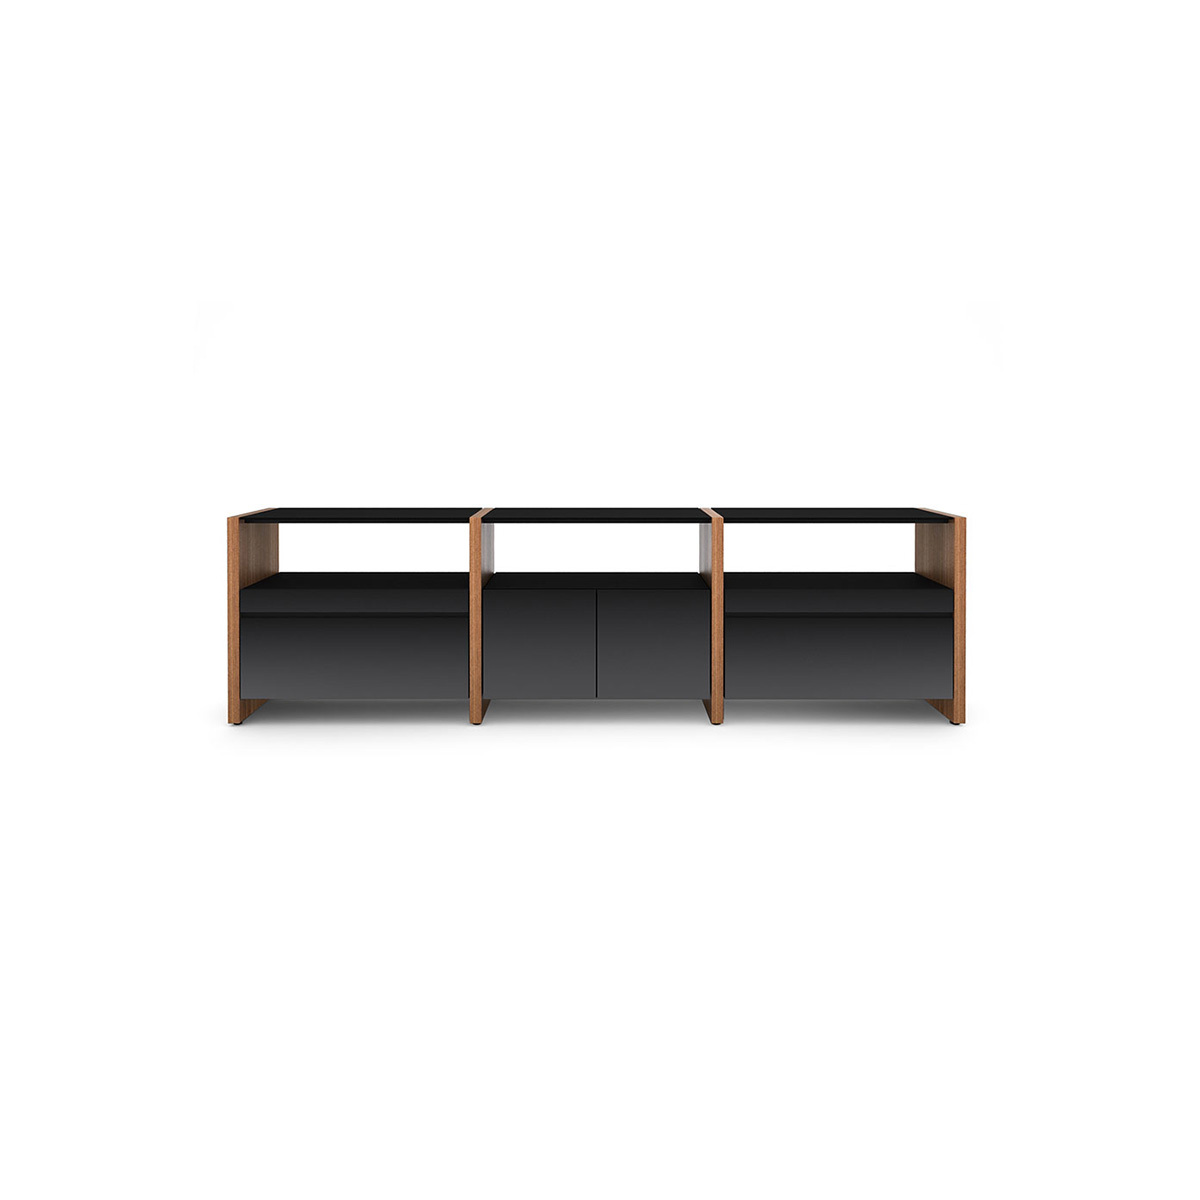 semblance office modular system desk. Semblance Office Modular System Desk